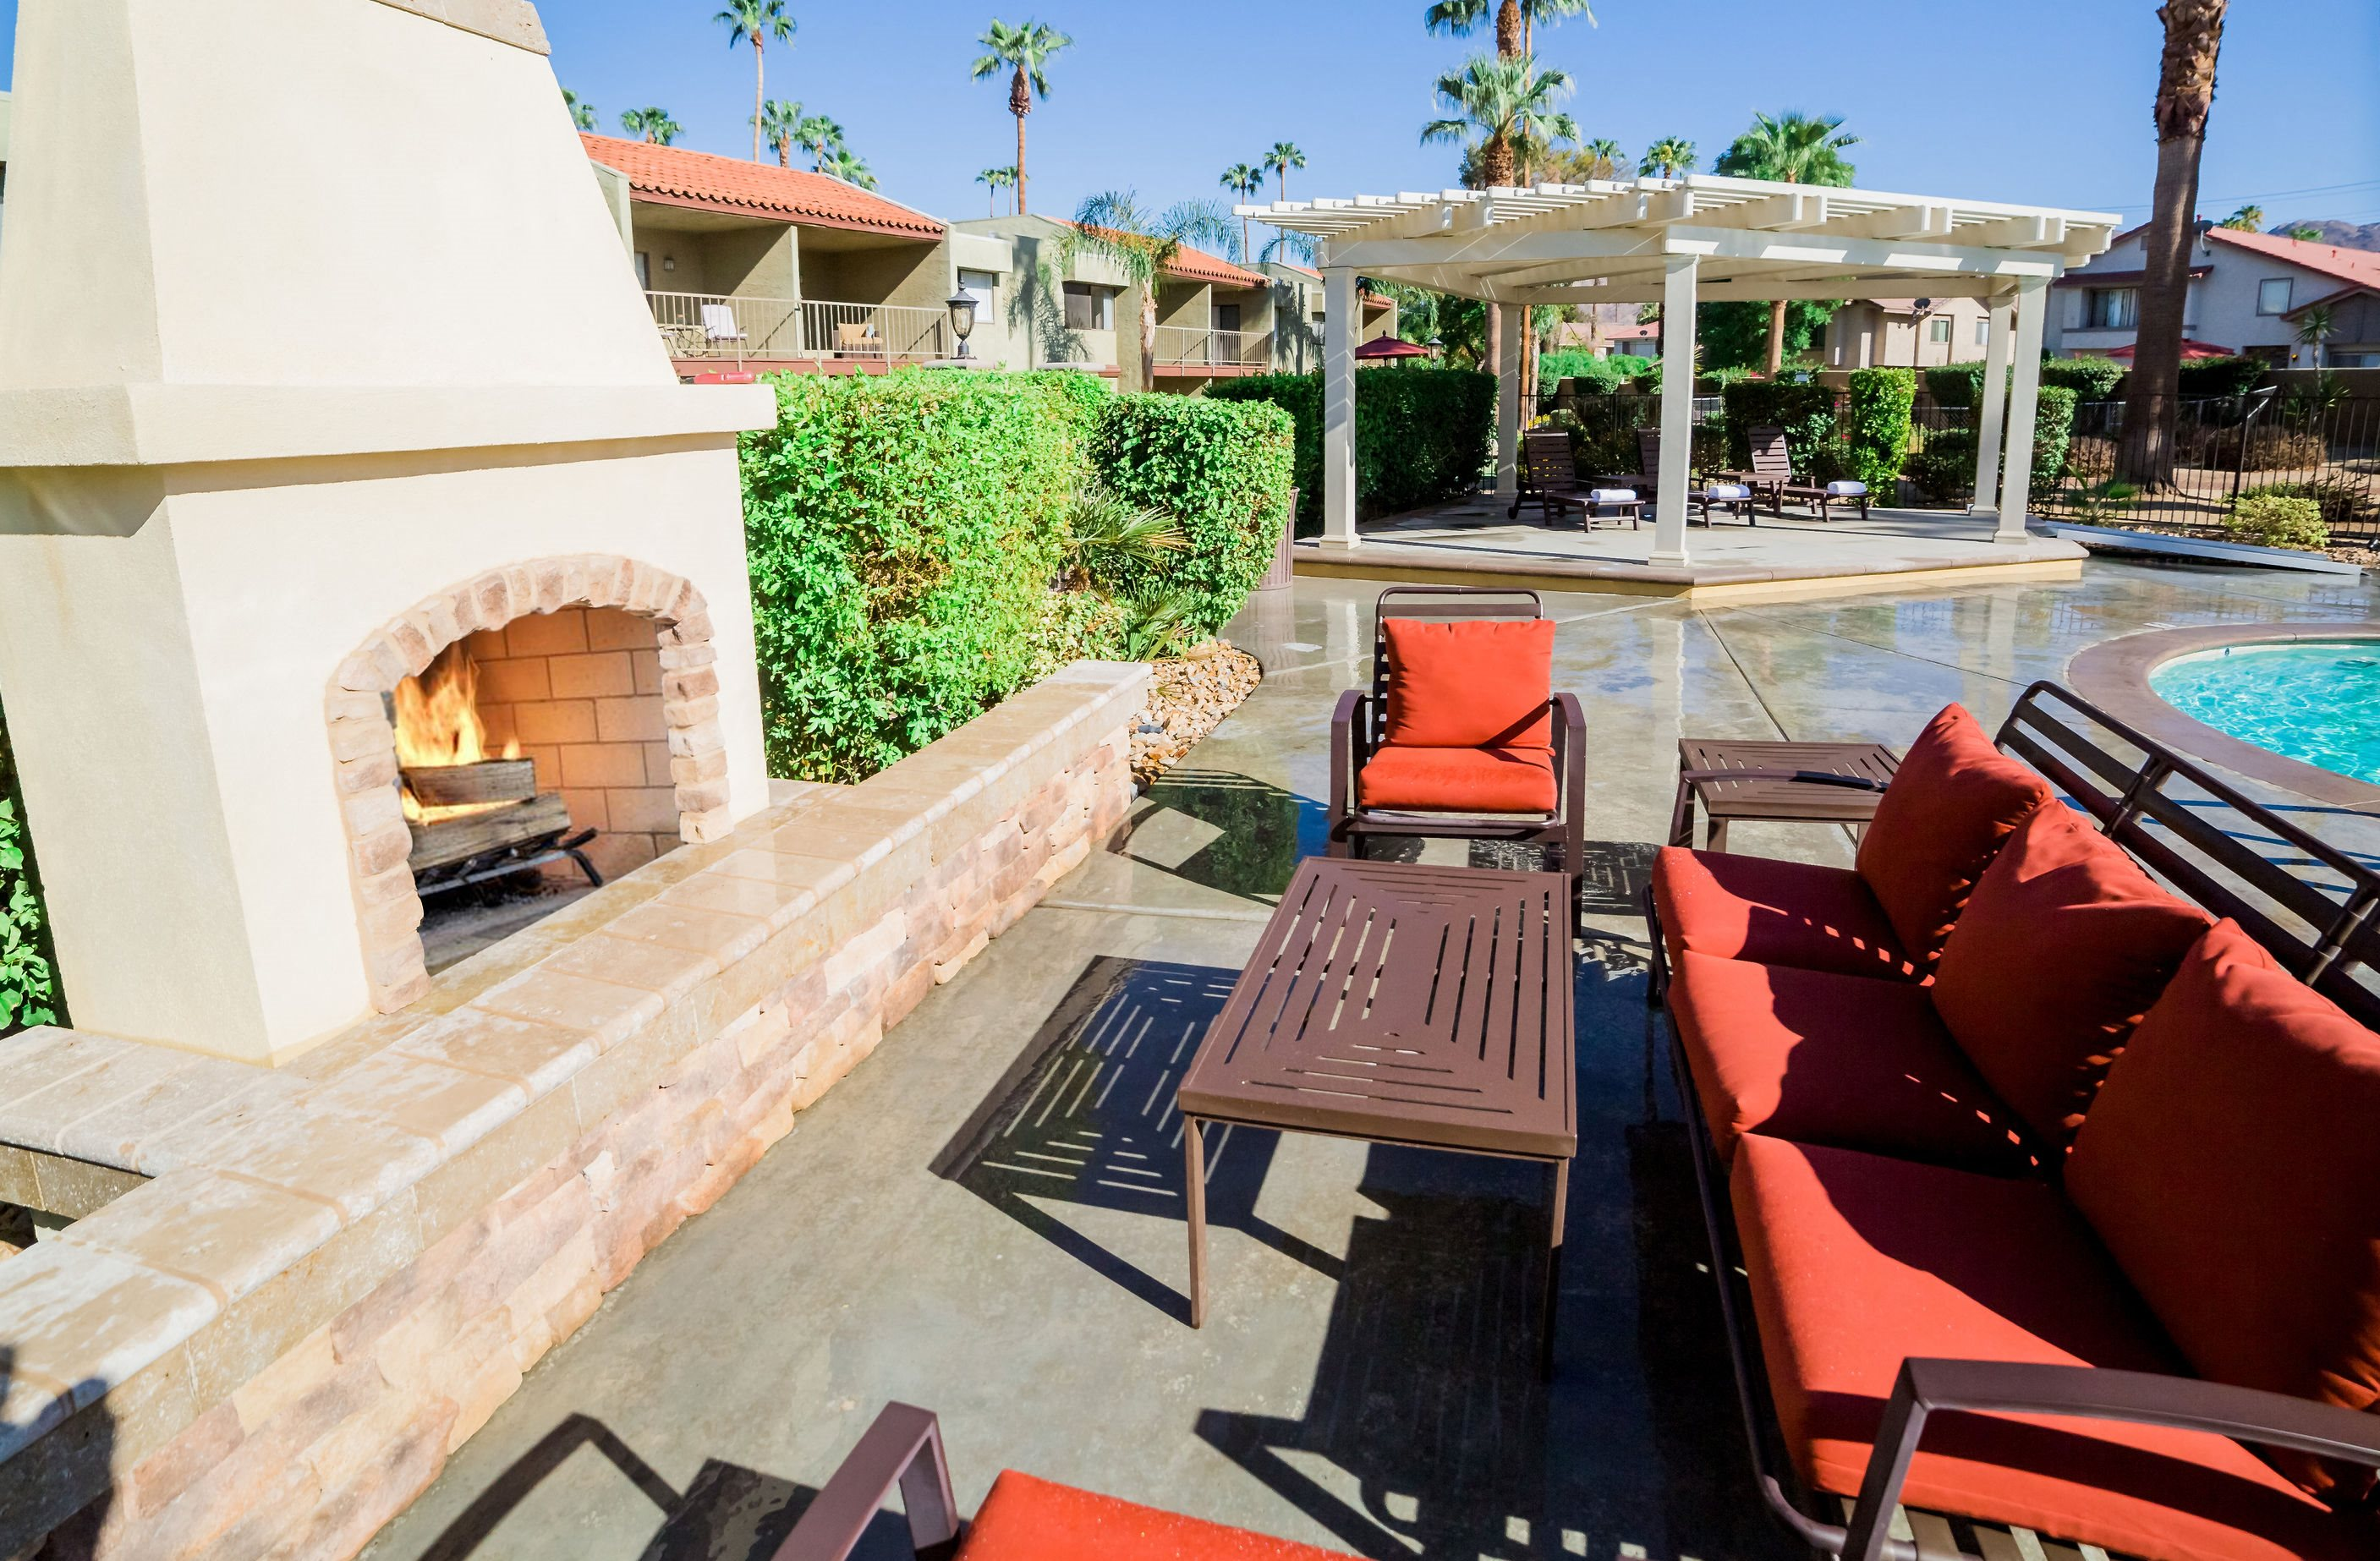 Ariana At El Paseo Lifestyle - Outdoor Fireplace & Lounge Area